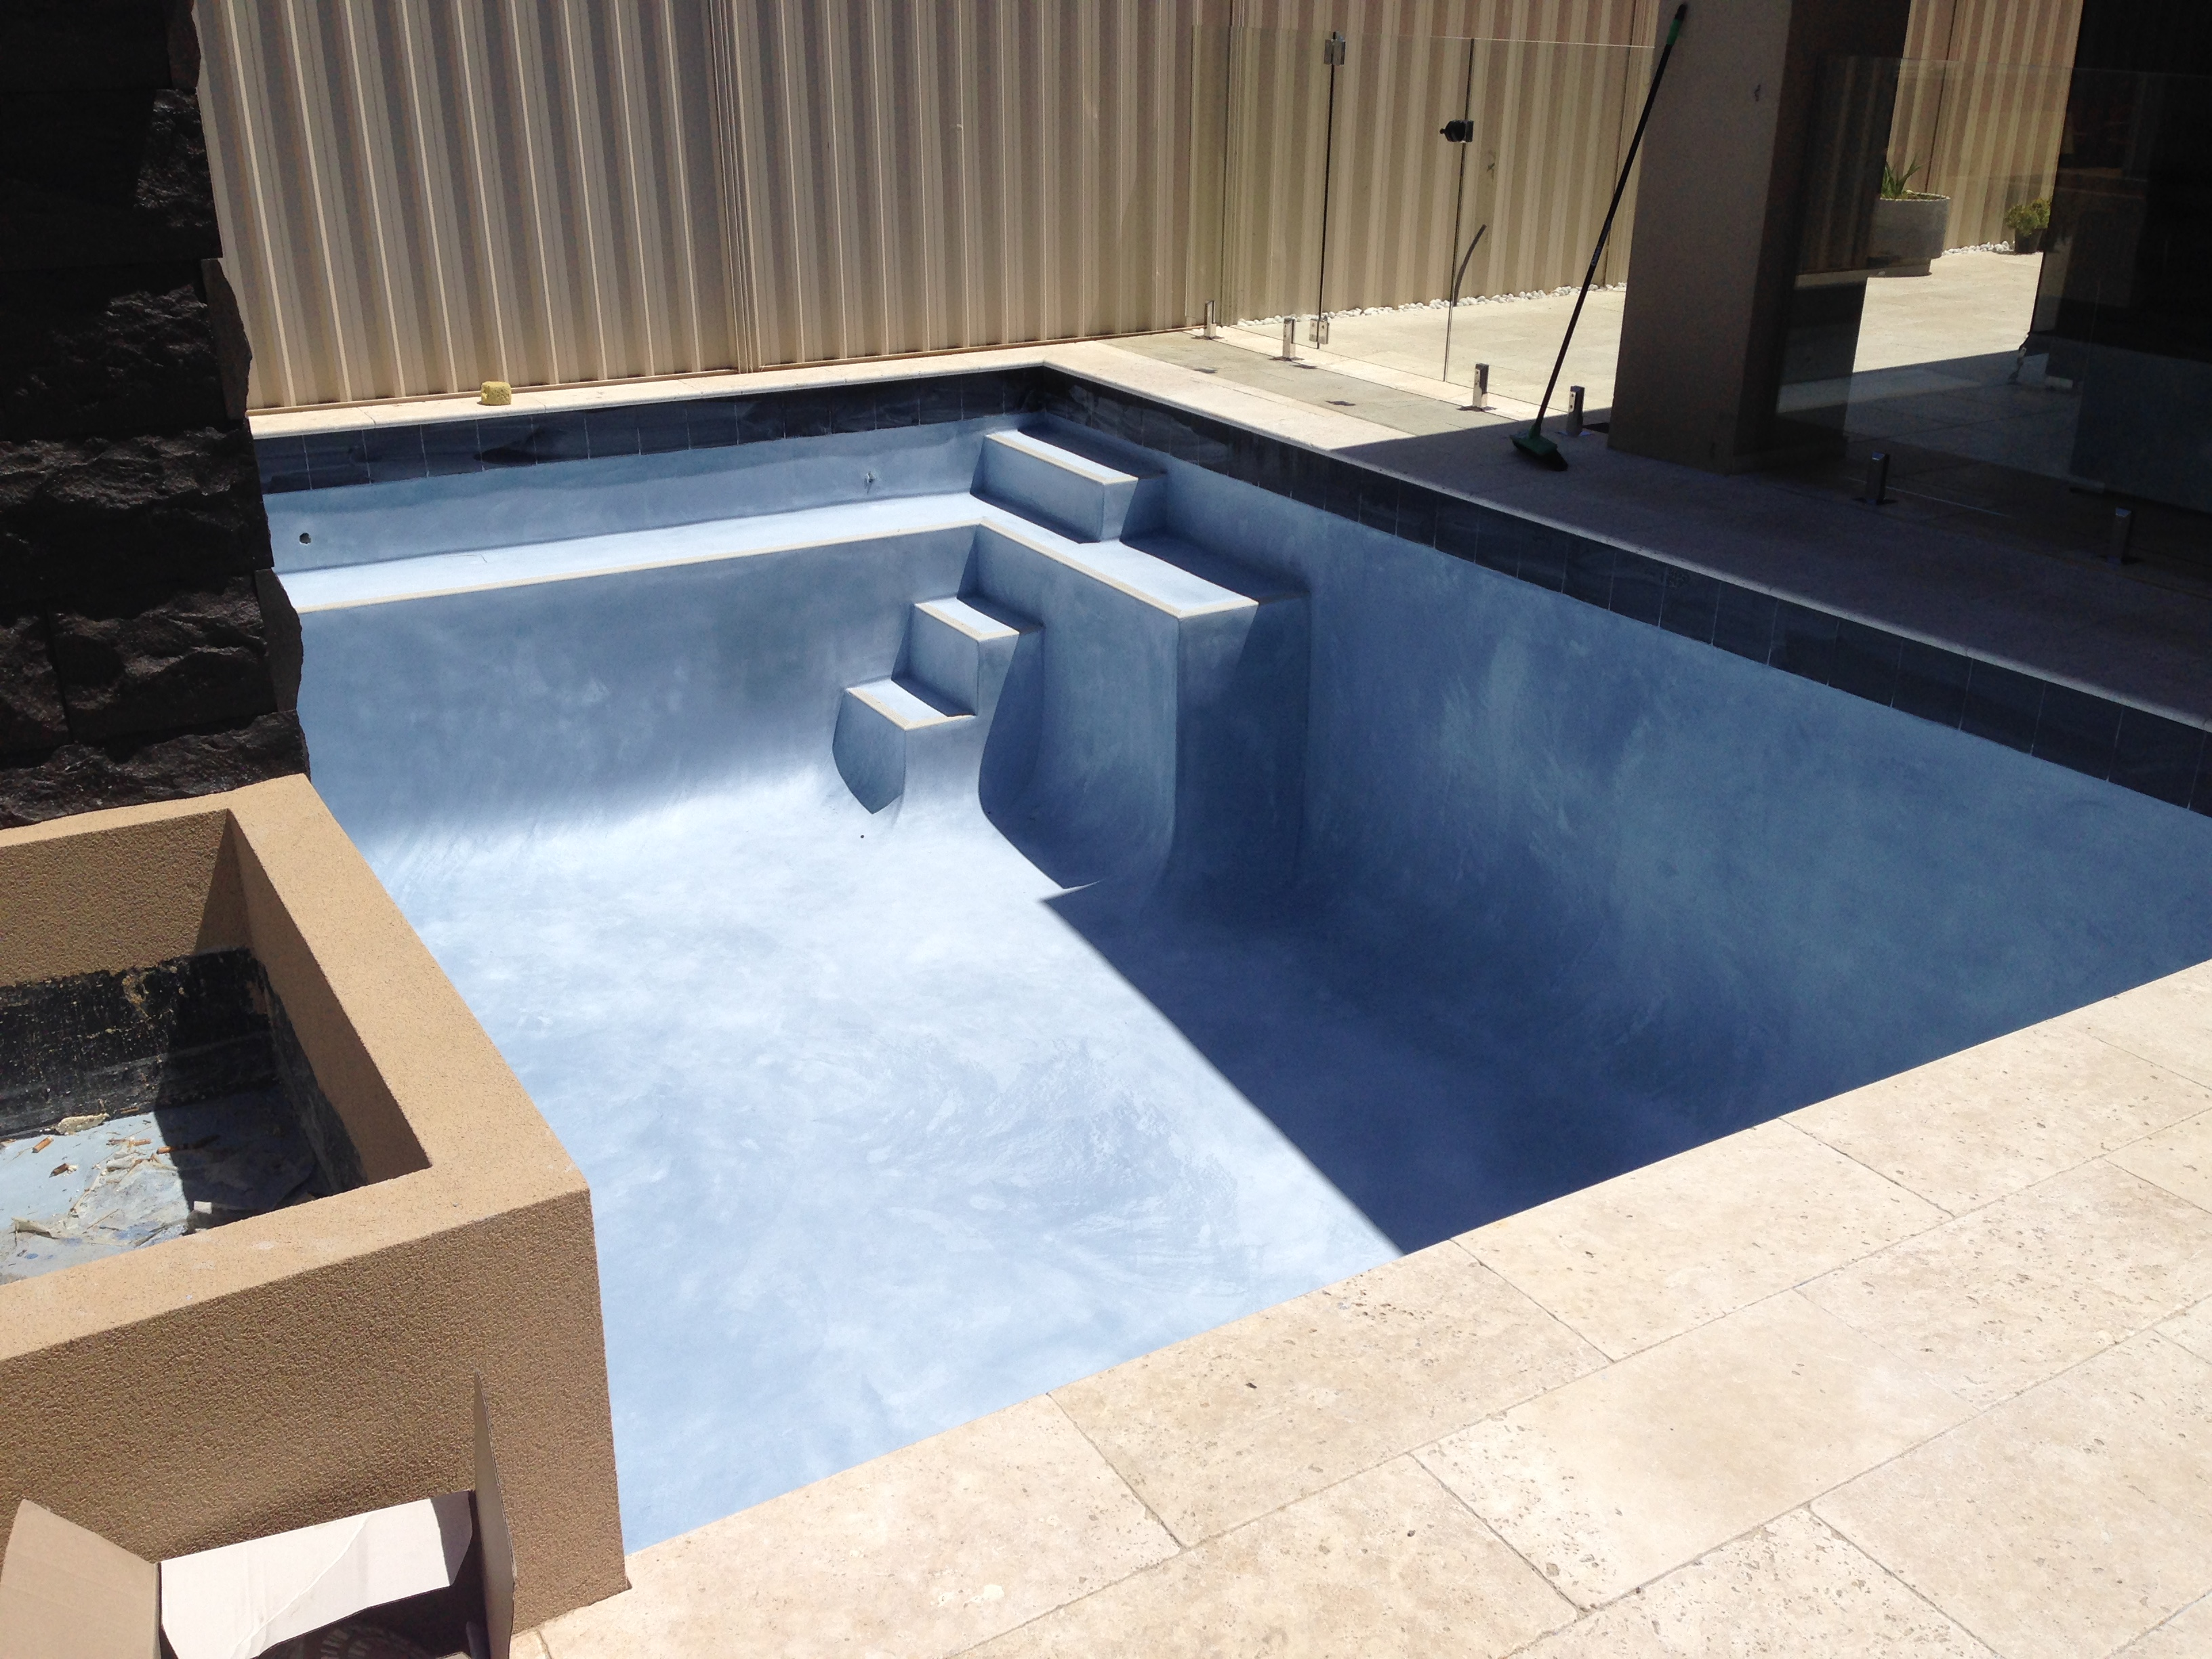 Concrete swimming pool interiors pools by design for Concrete block swimming pool plans